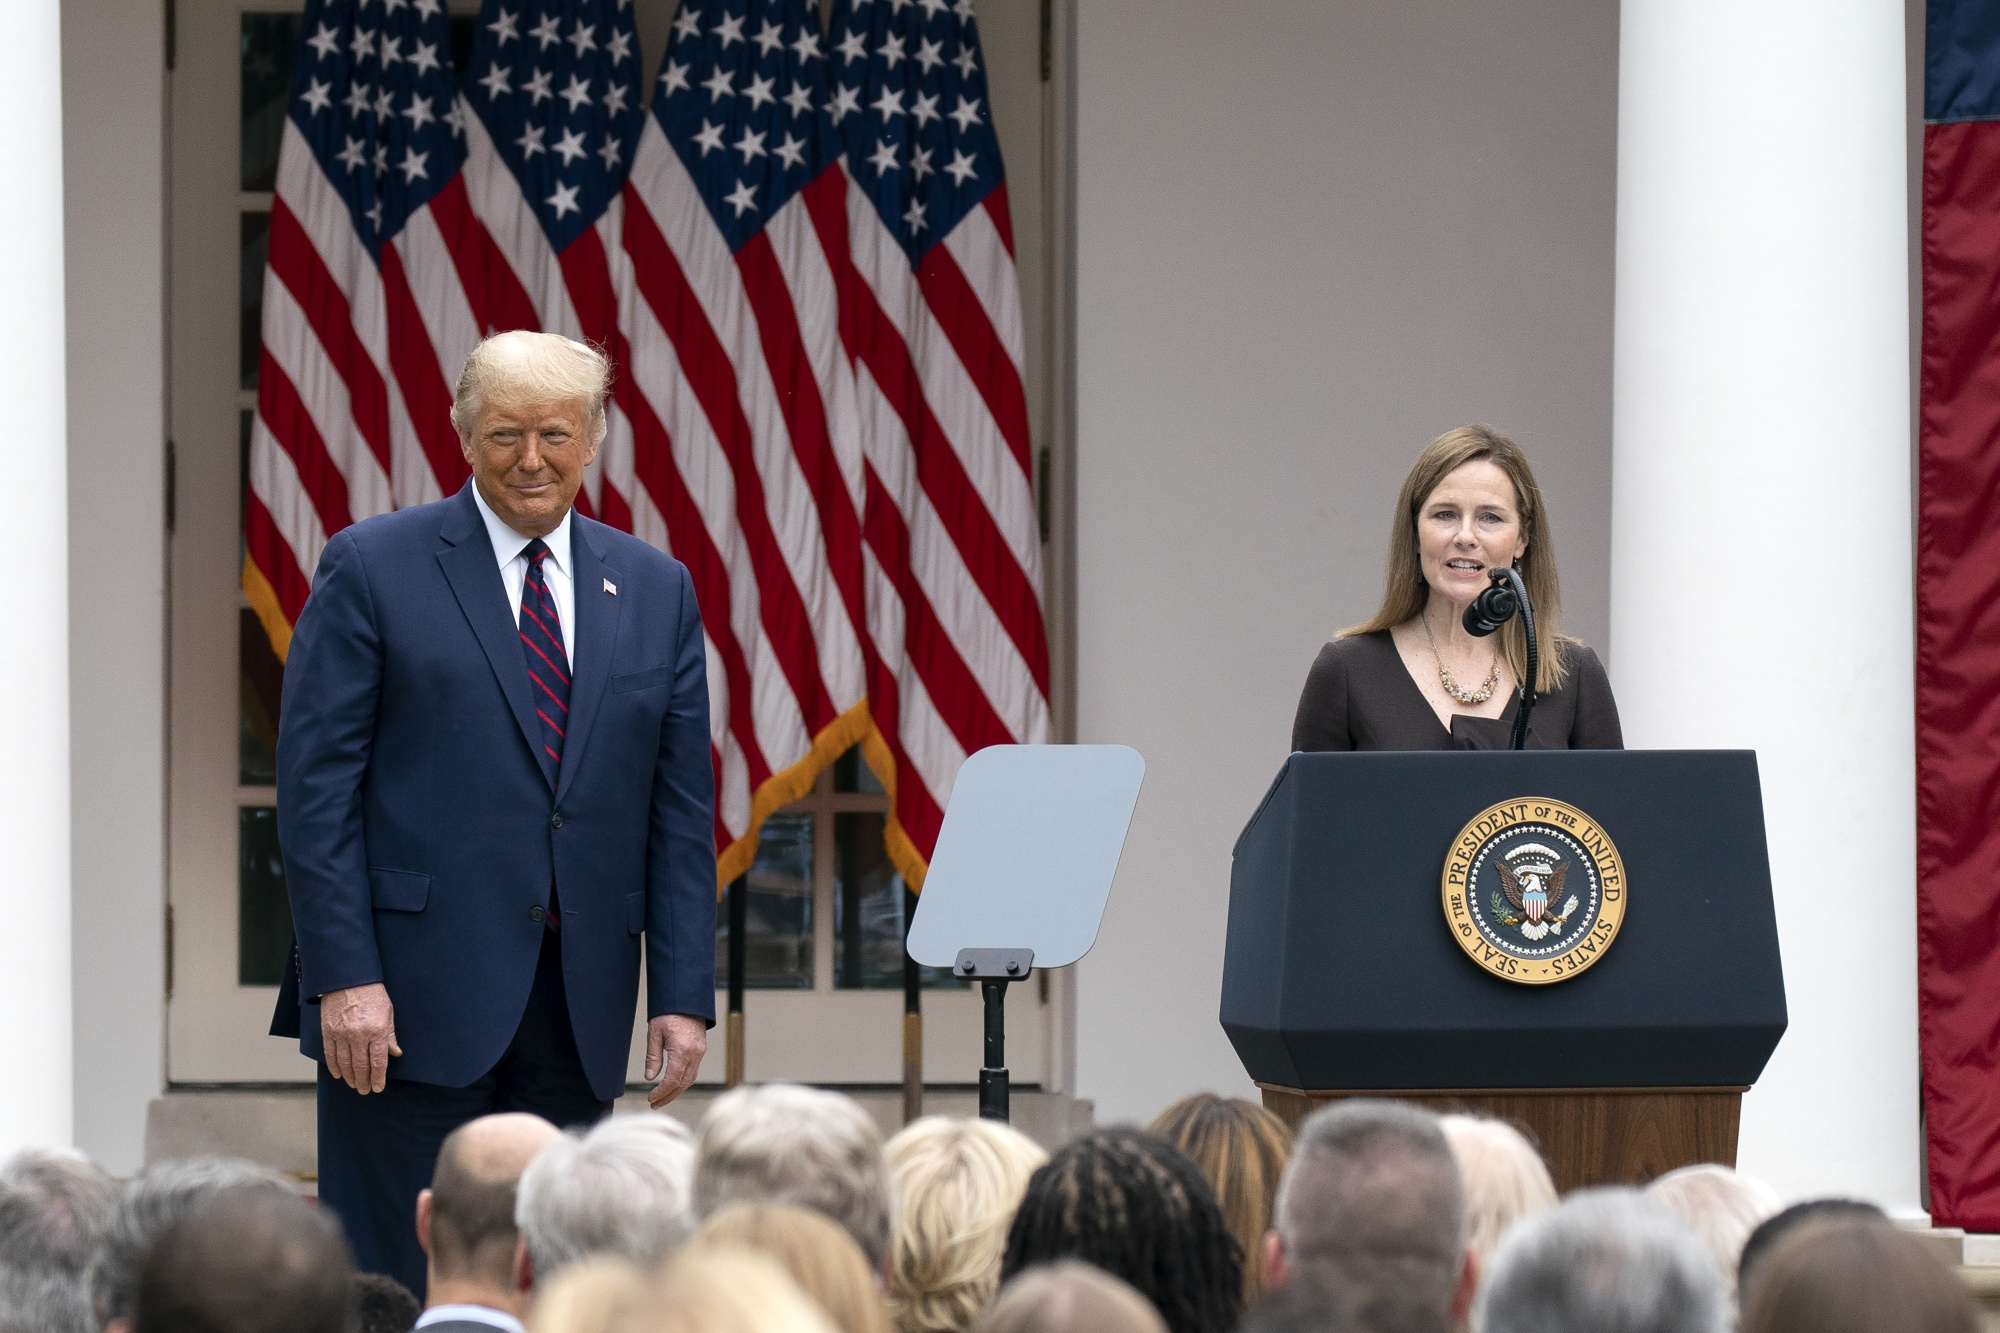 Amy Coney Barrett speaks as President Donald Trump listens during an announcement ceremony at the White House in Washington, D.C., on Saturday, Sept. 26.